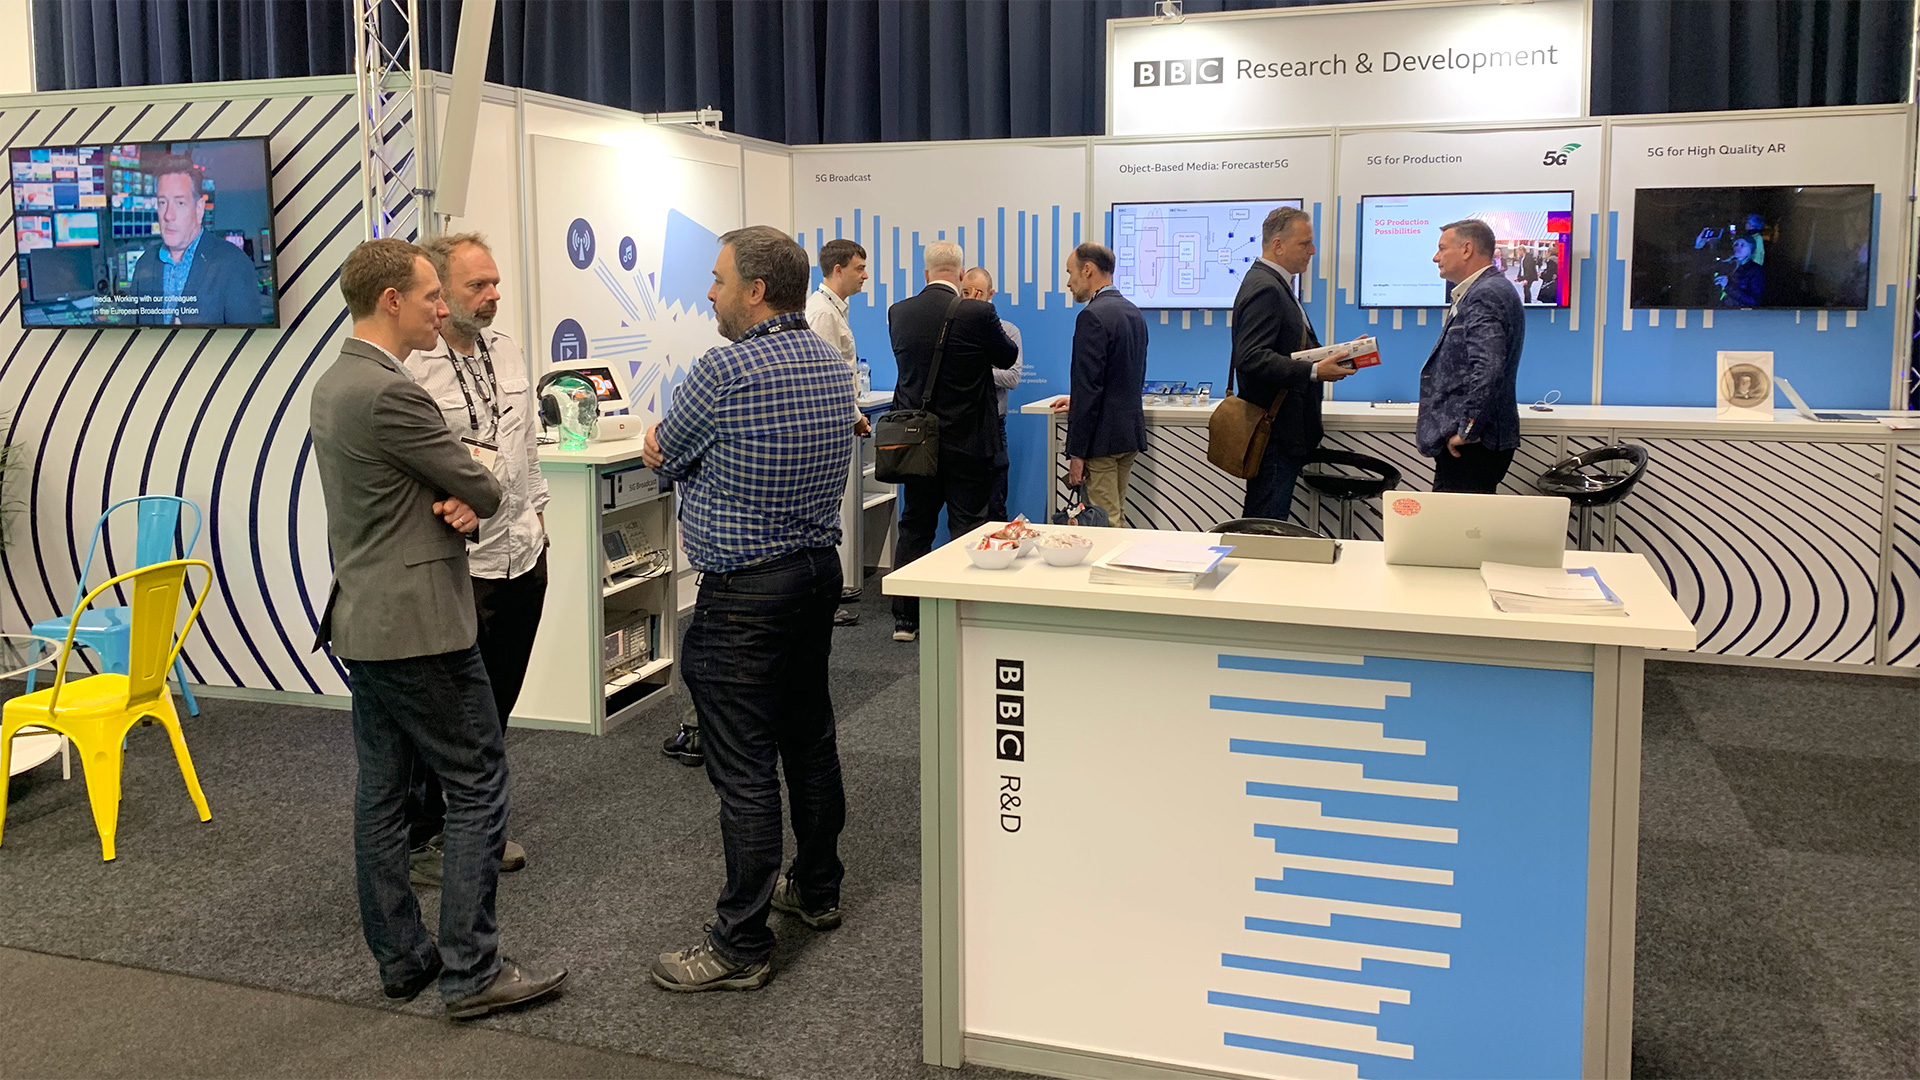 The BBC R&D stand at IBC 2019